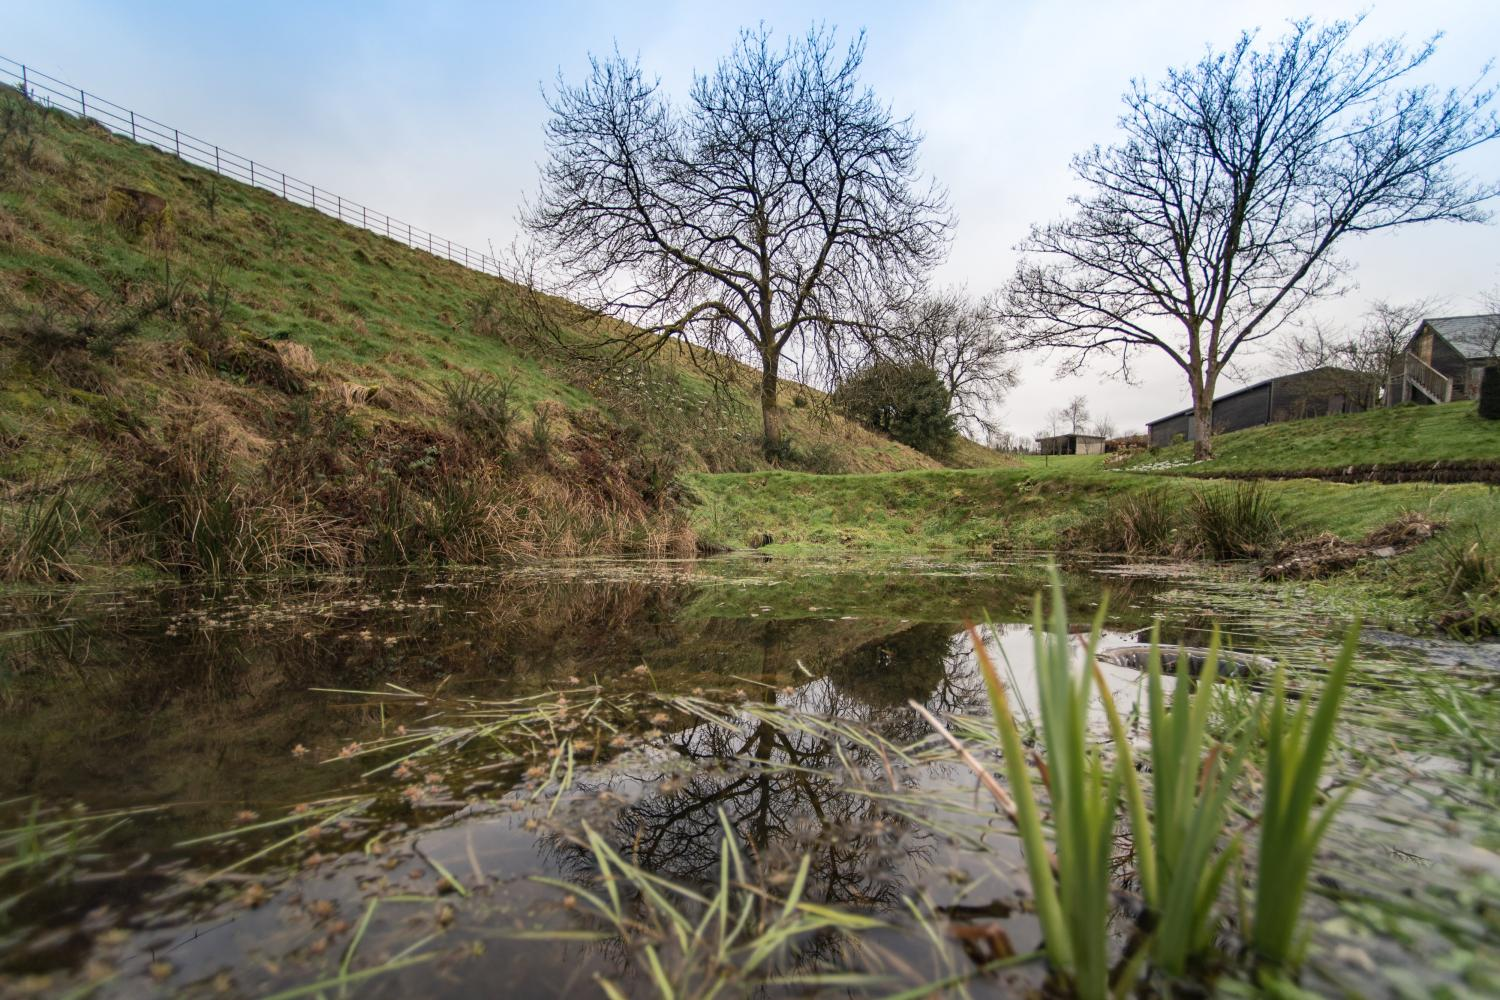 Pond on the approach to The Cow Shed